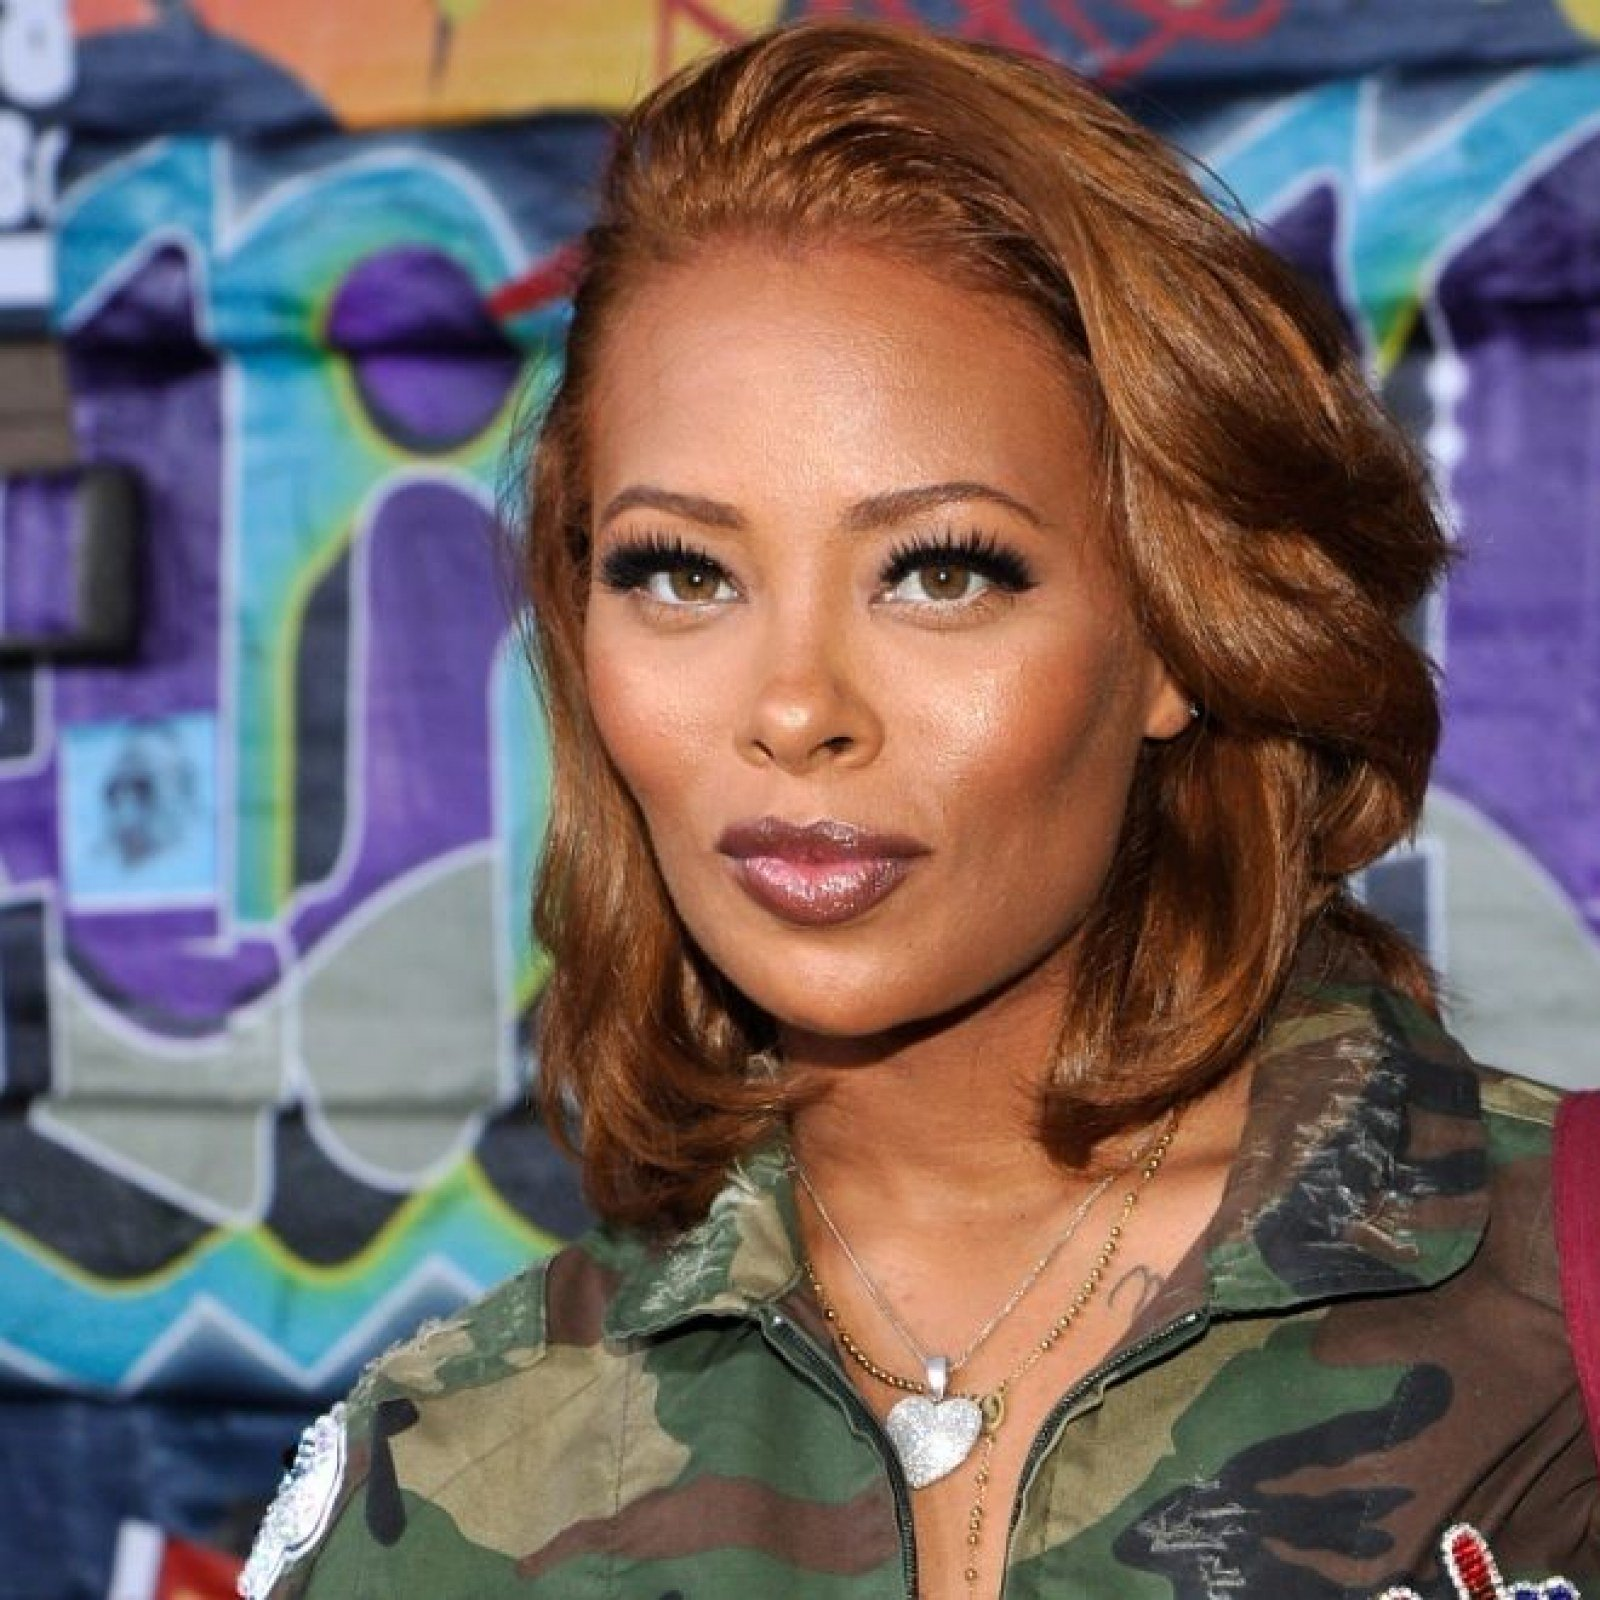 Eva Marcille Shares A Mind-Blowing Video Showing Who The 'BLM' Looters Really Are